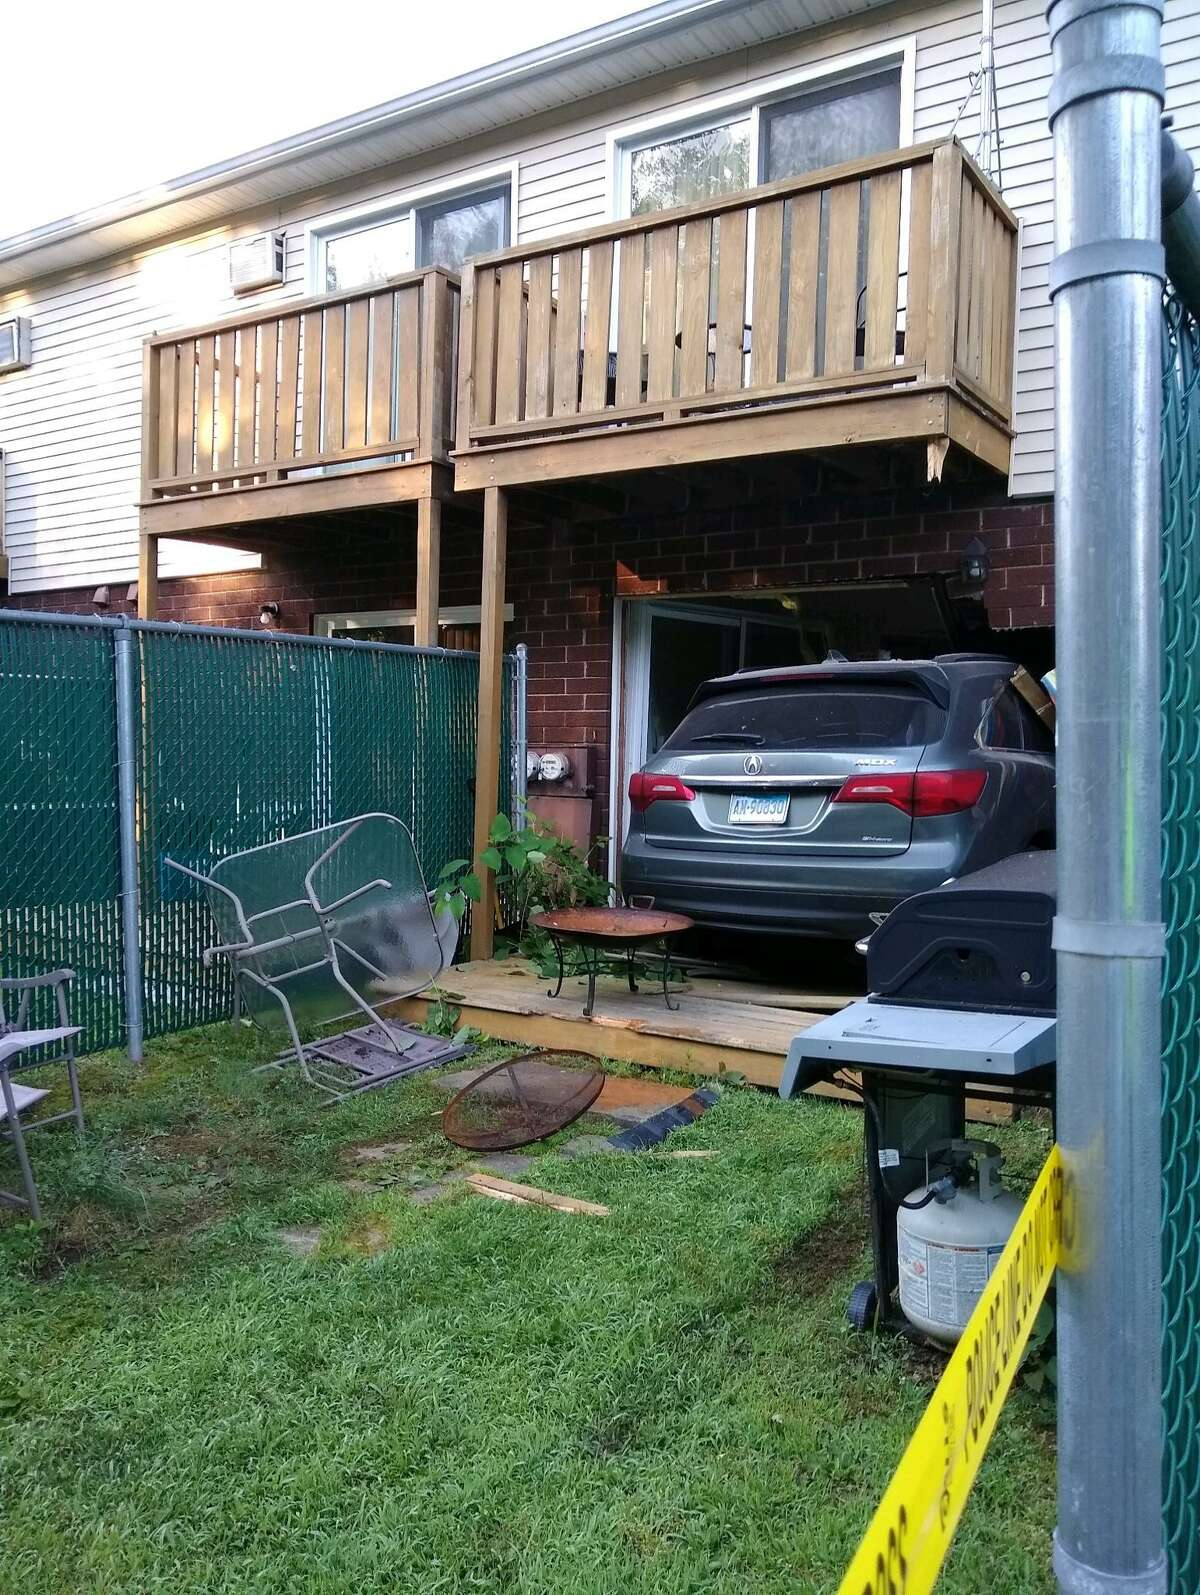 West Haven police say that after being shot, the driver of the car crashed into the apartment complex.